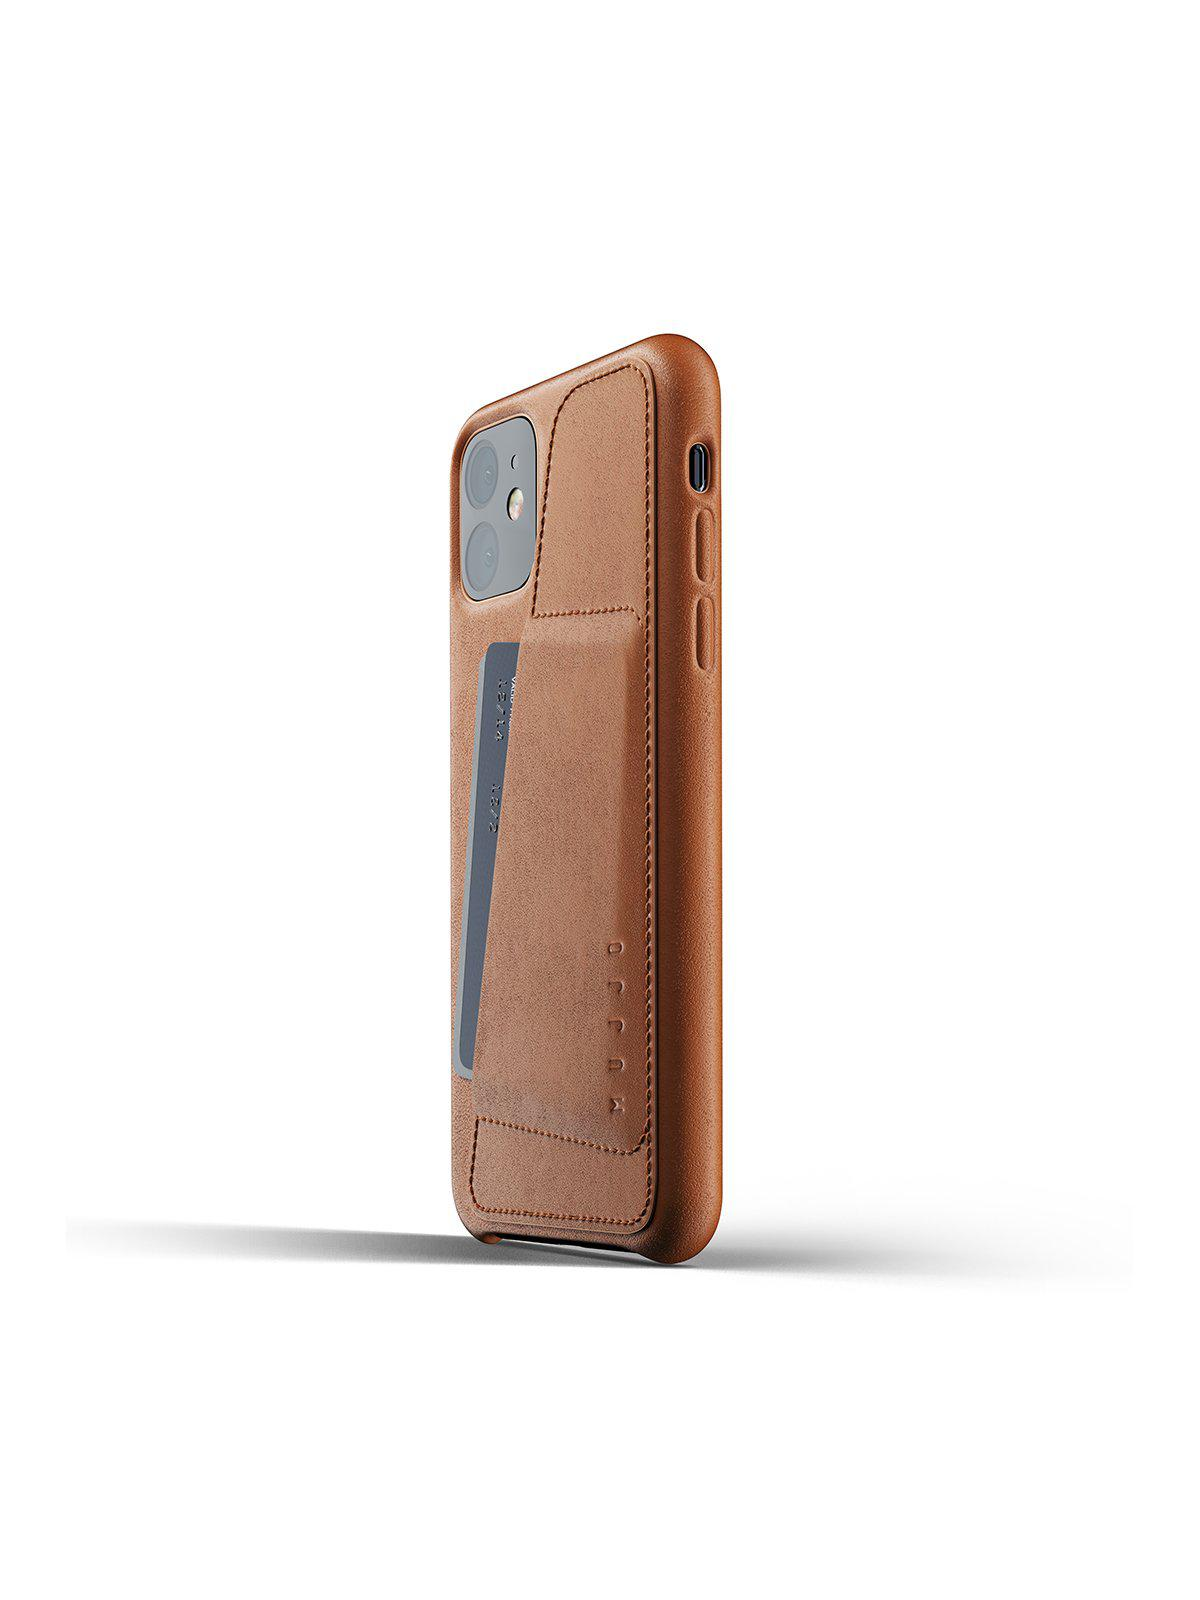 Mujjo Full Leather Wallet Case for iPhone 11 Tan - MORE by Morello Indonesia